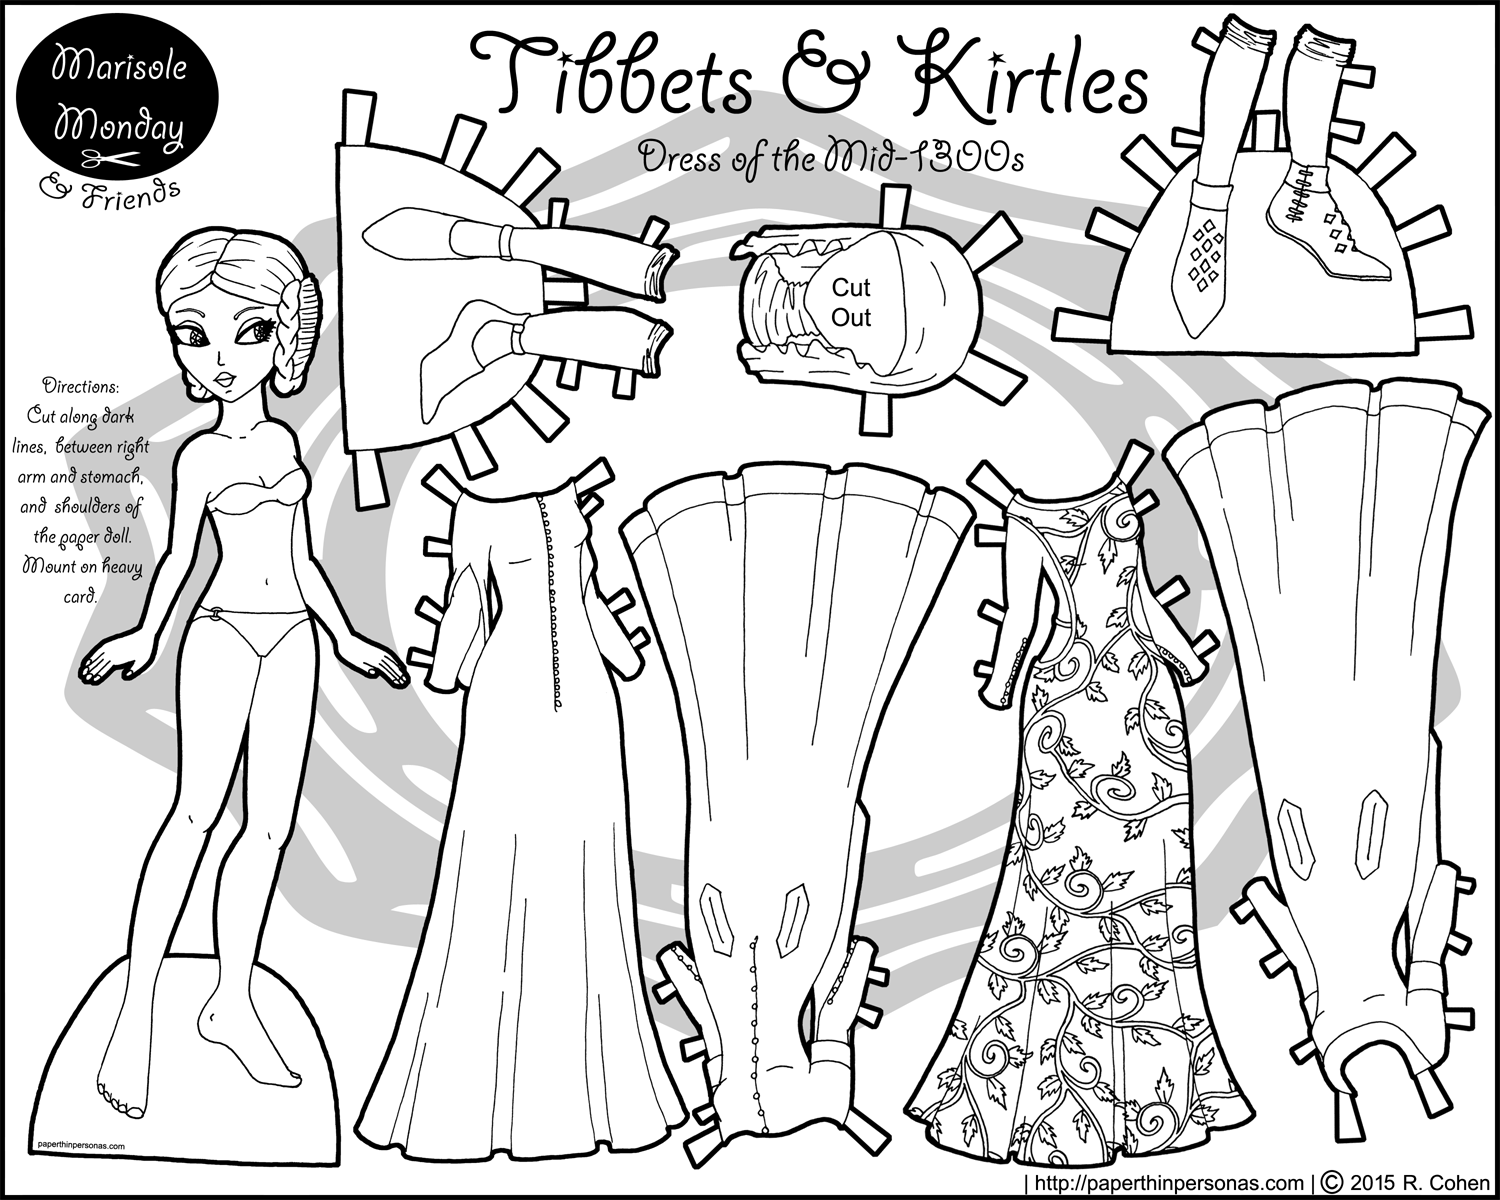 Tibbets and Kirtles: A Paper Doll of the Mid-1300s • Paper